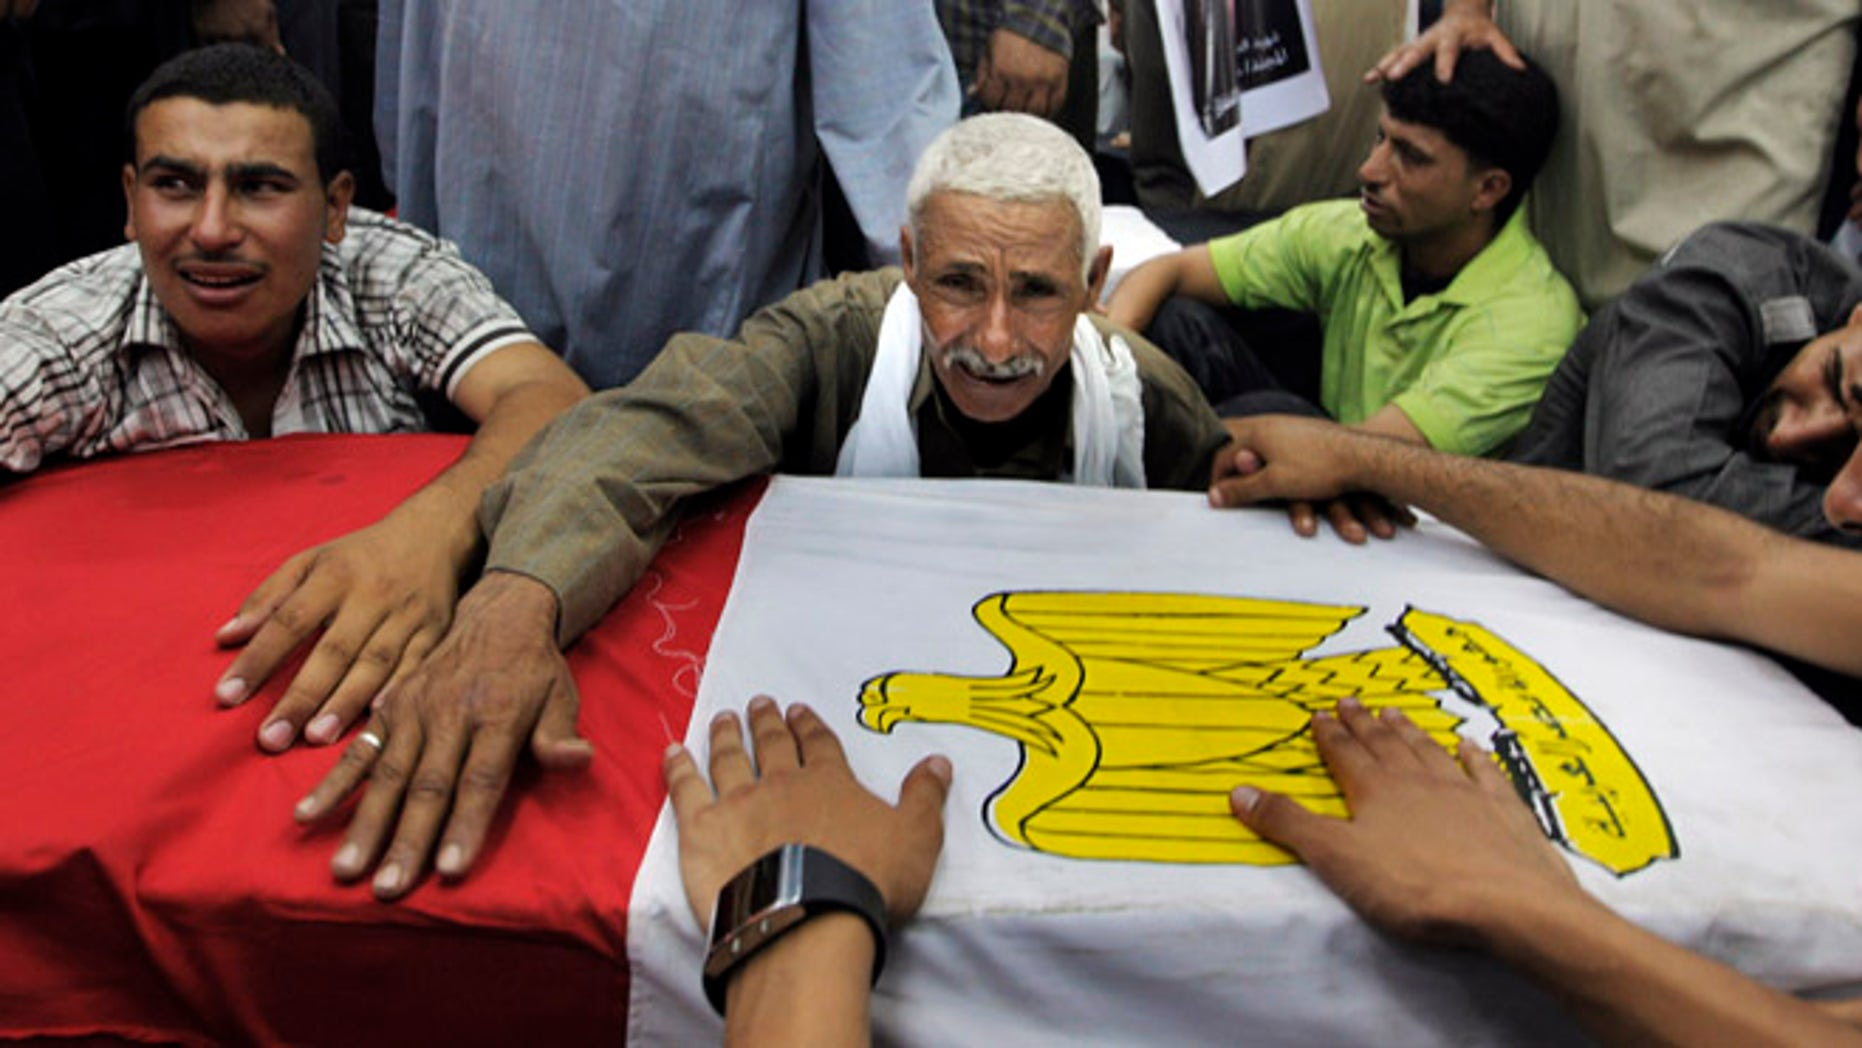 Aug. 7, 2012: Relatives of an Egyptian soldier mourn during the funeral of one of 16 soldiers killed in an attack over the weekend by suspected militants in Sinai in Cairo, Egypt.